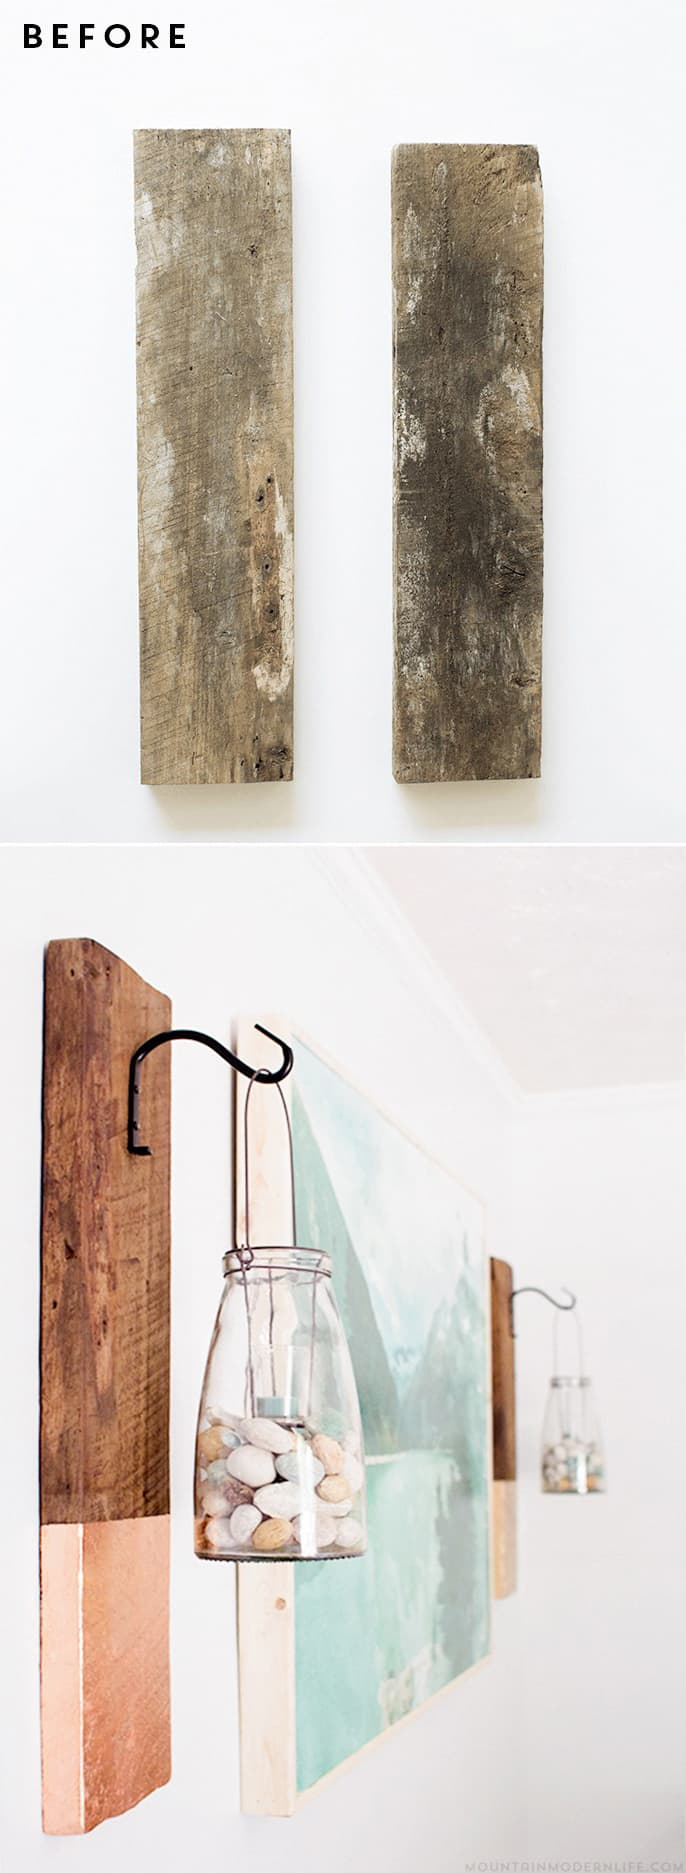 diy-rustic-modern-wall-sconce-reclaimed-wood-mountainmodernlife-com